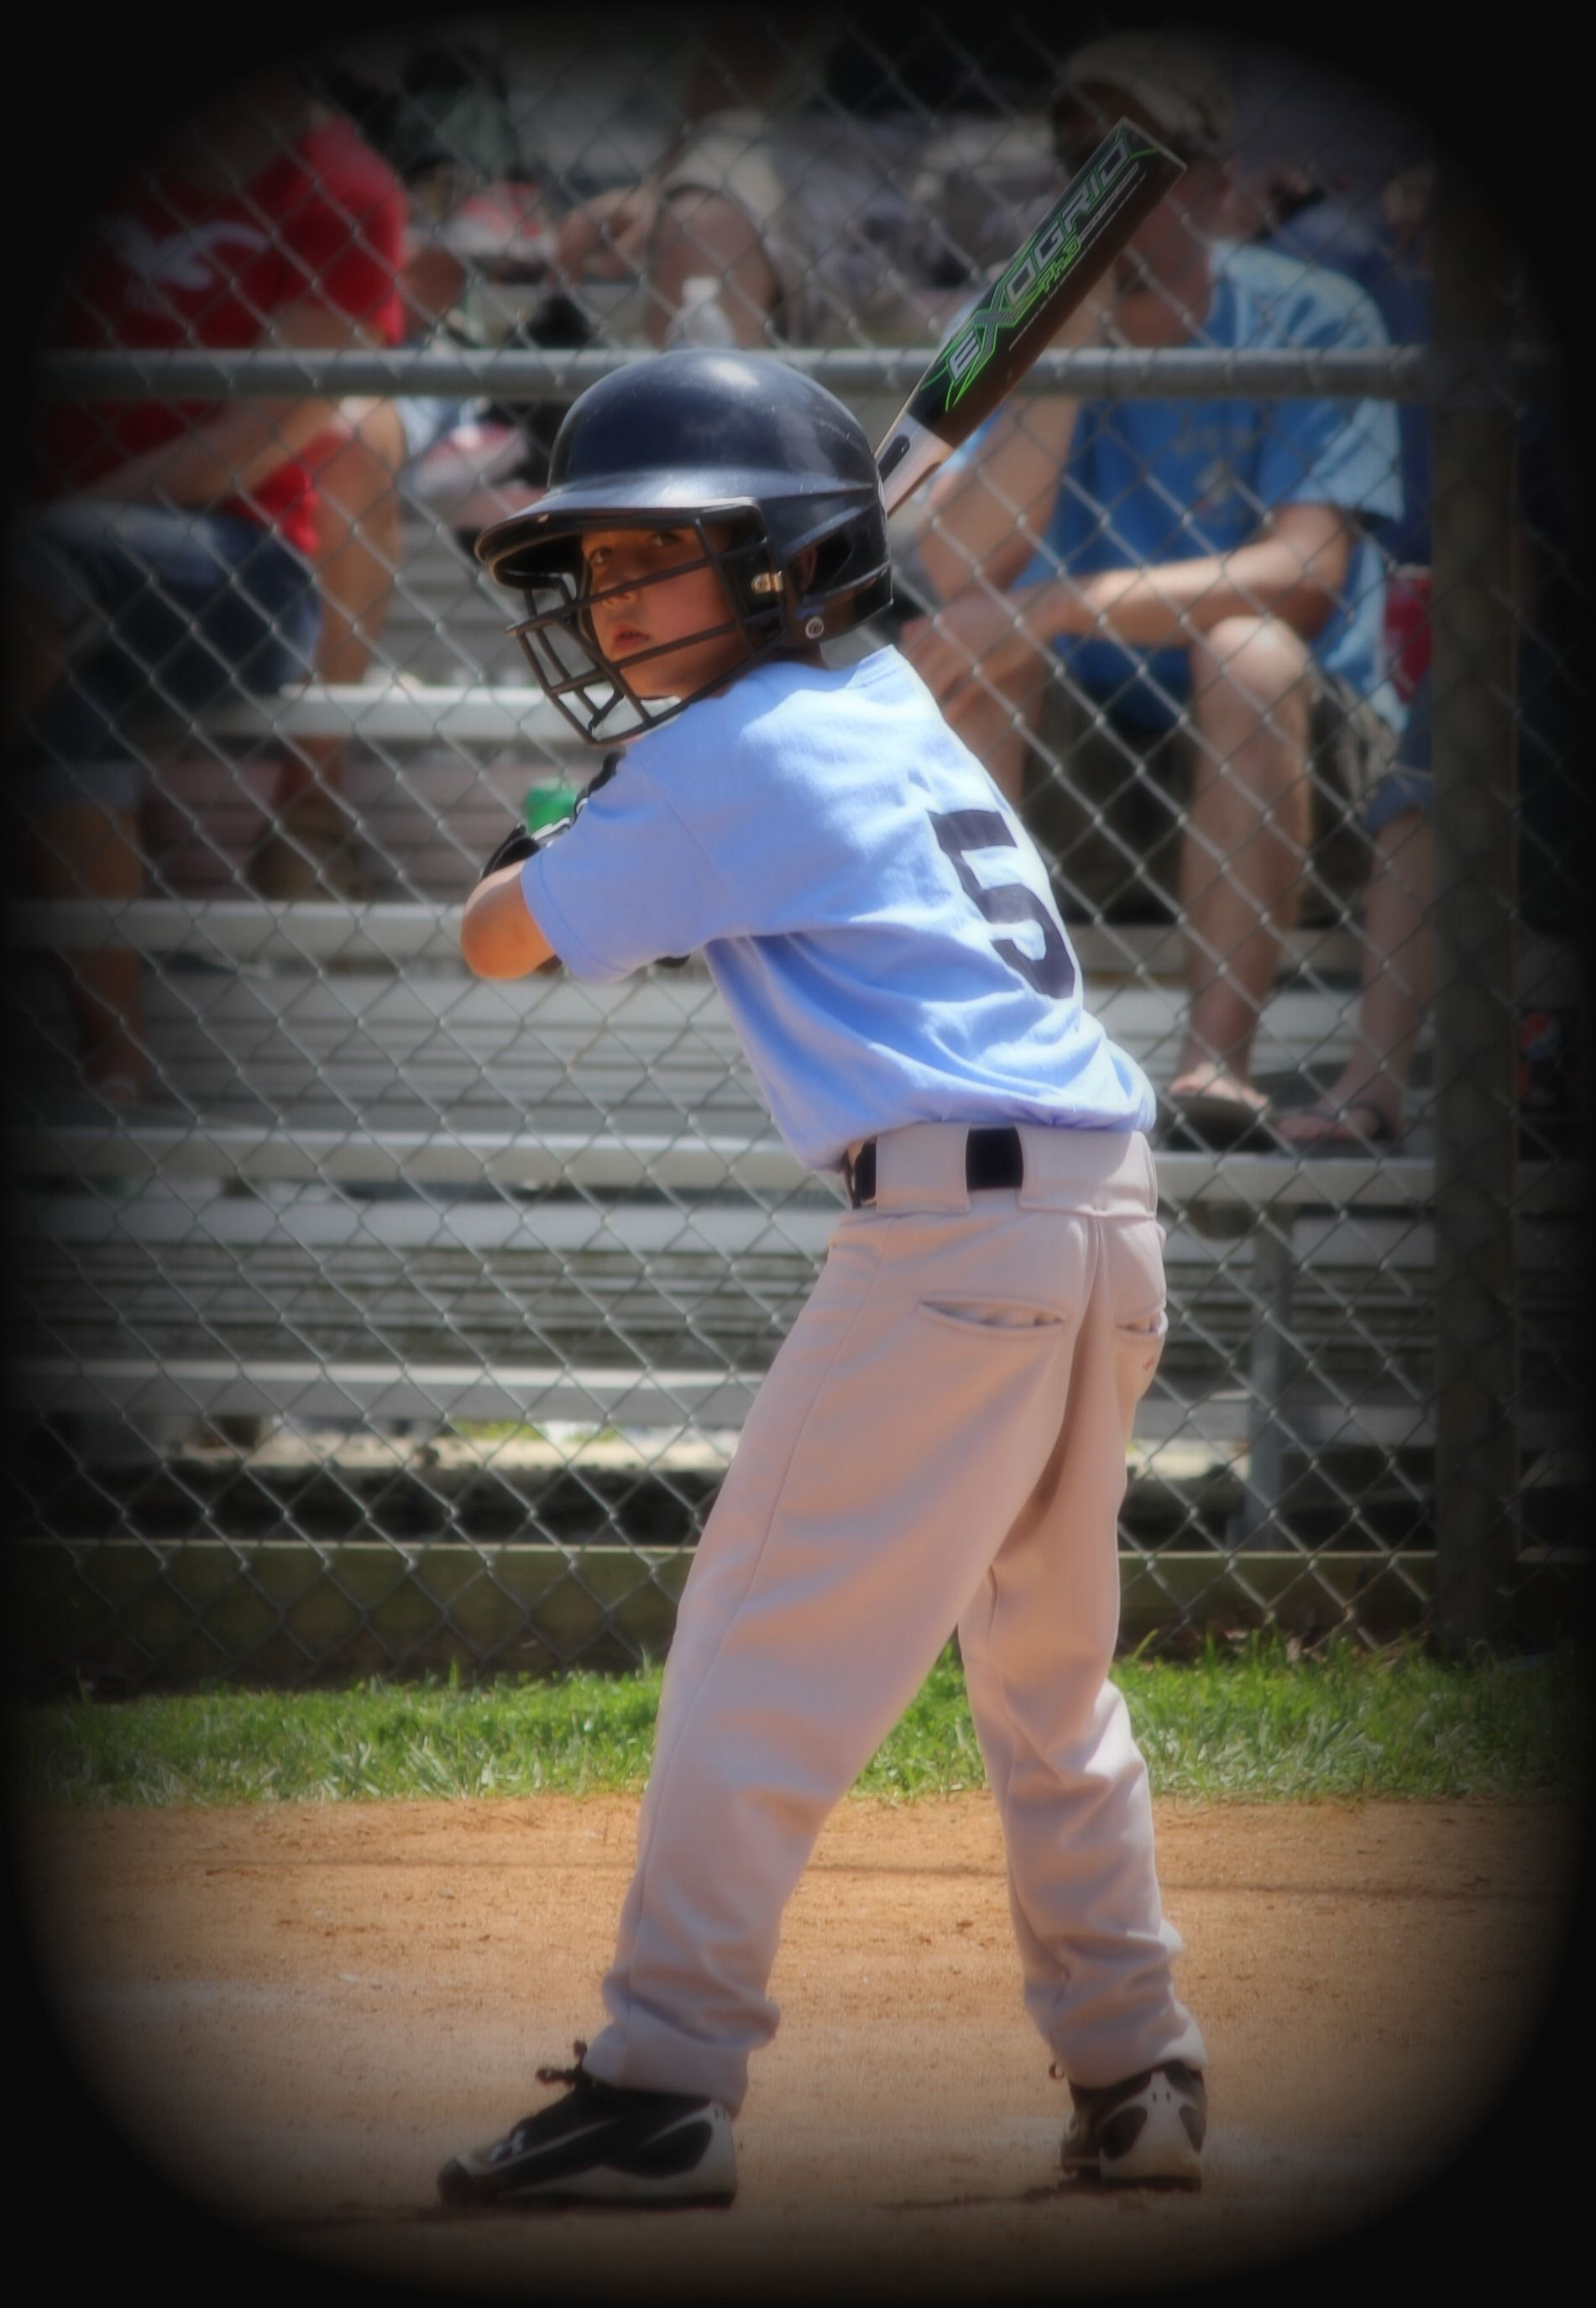 CALEB... MY BALL PLAYER